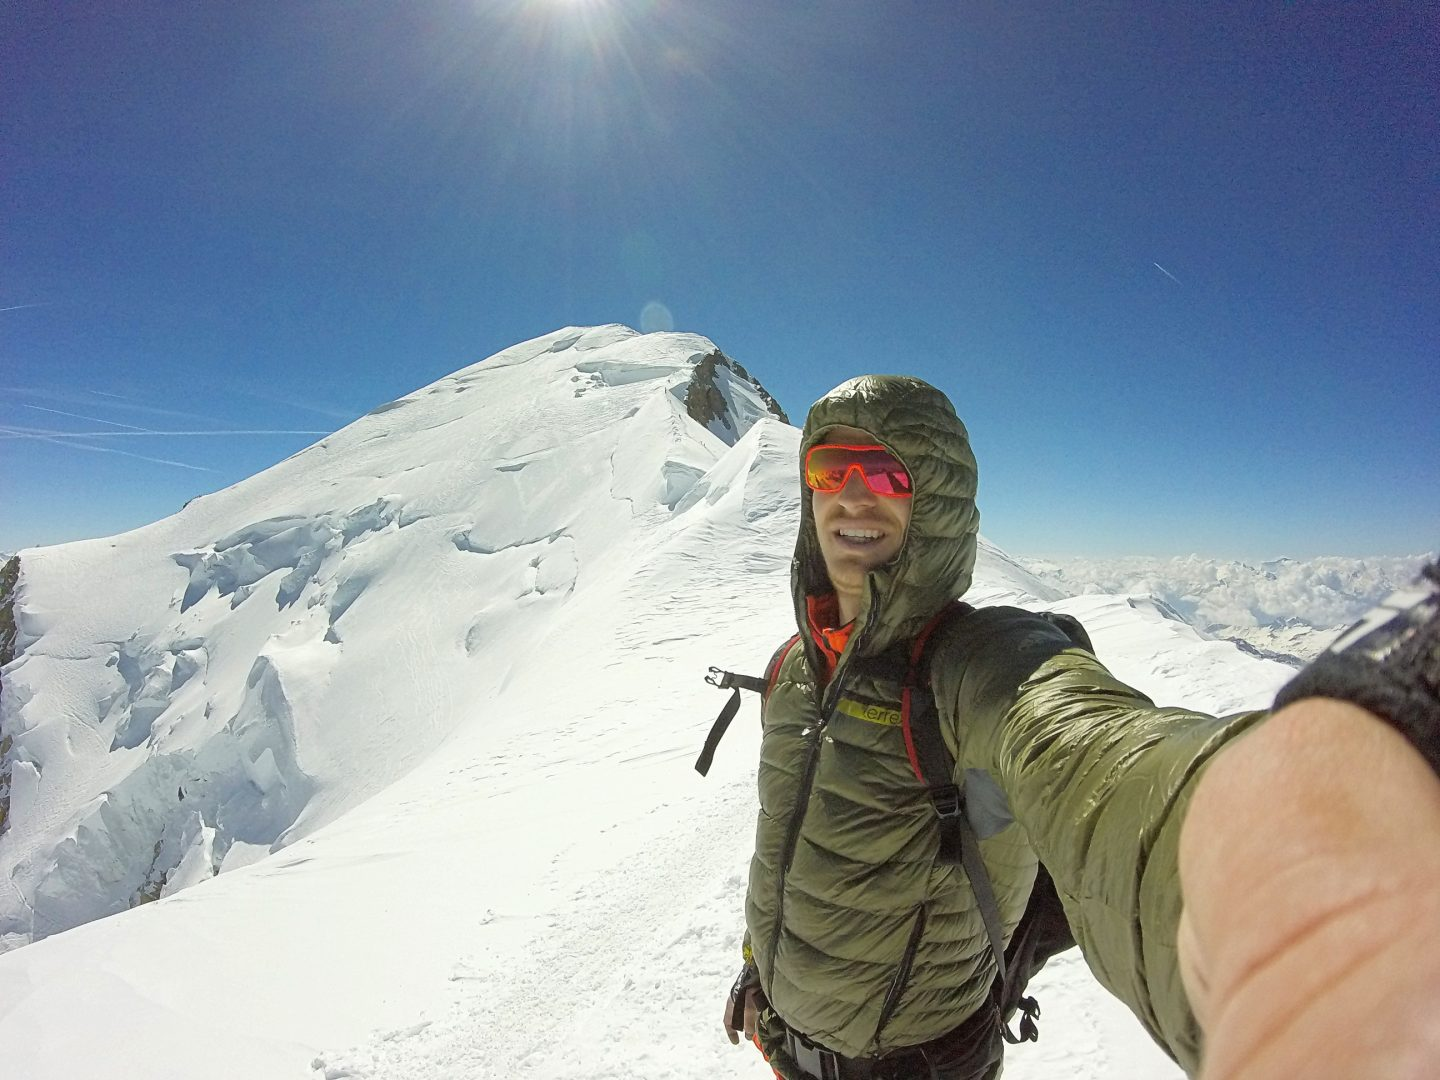 Marcel taking a selfie in front of Mount Blanc's top. In the background you can see the snowy peak.